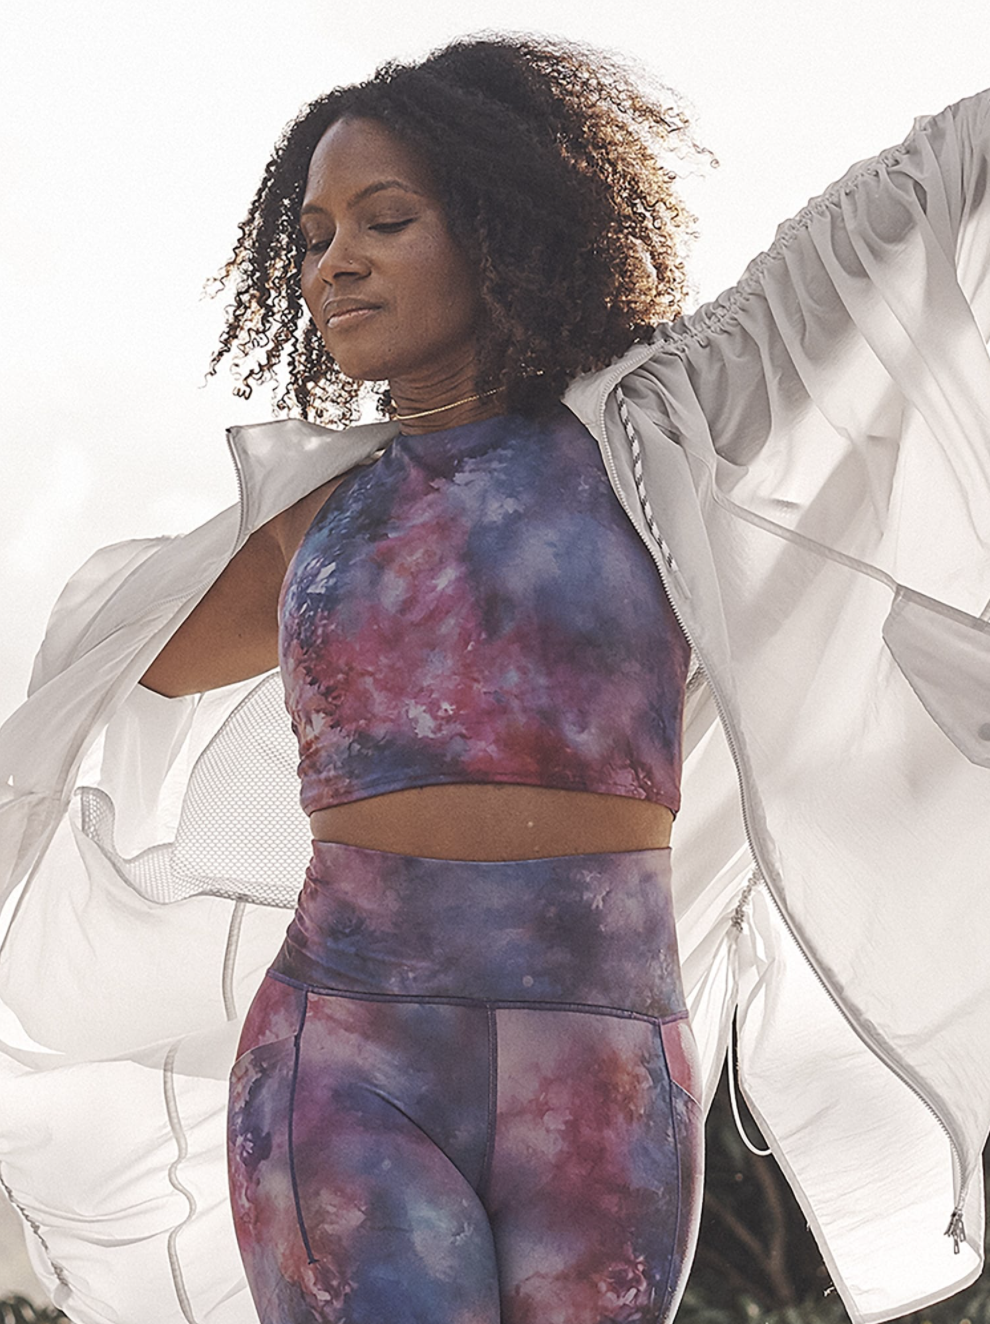 A model wearing the sleeveless crop top with a pink and purple galaxy/tie-dye design